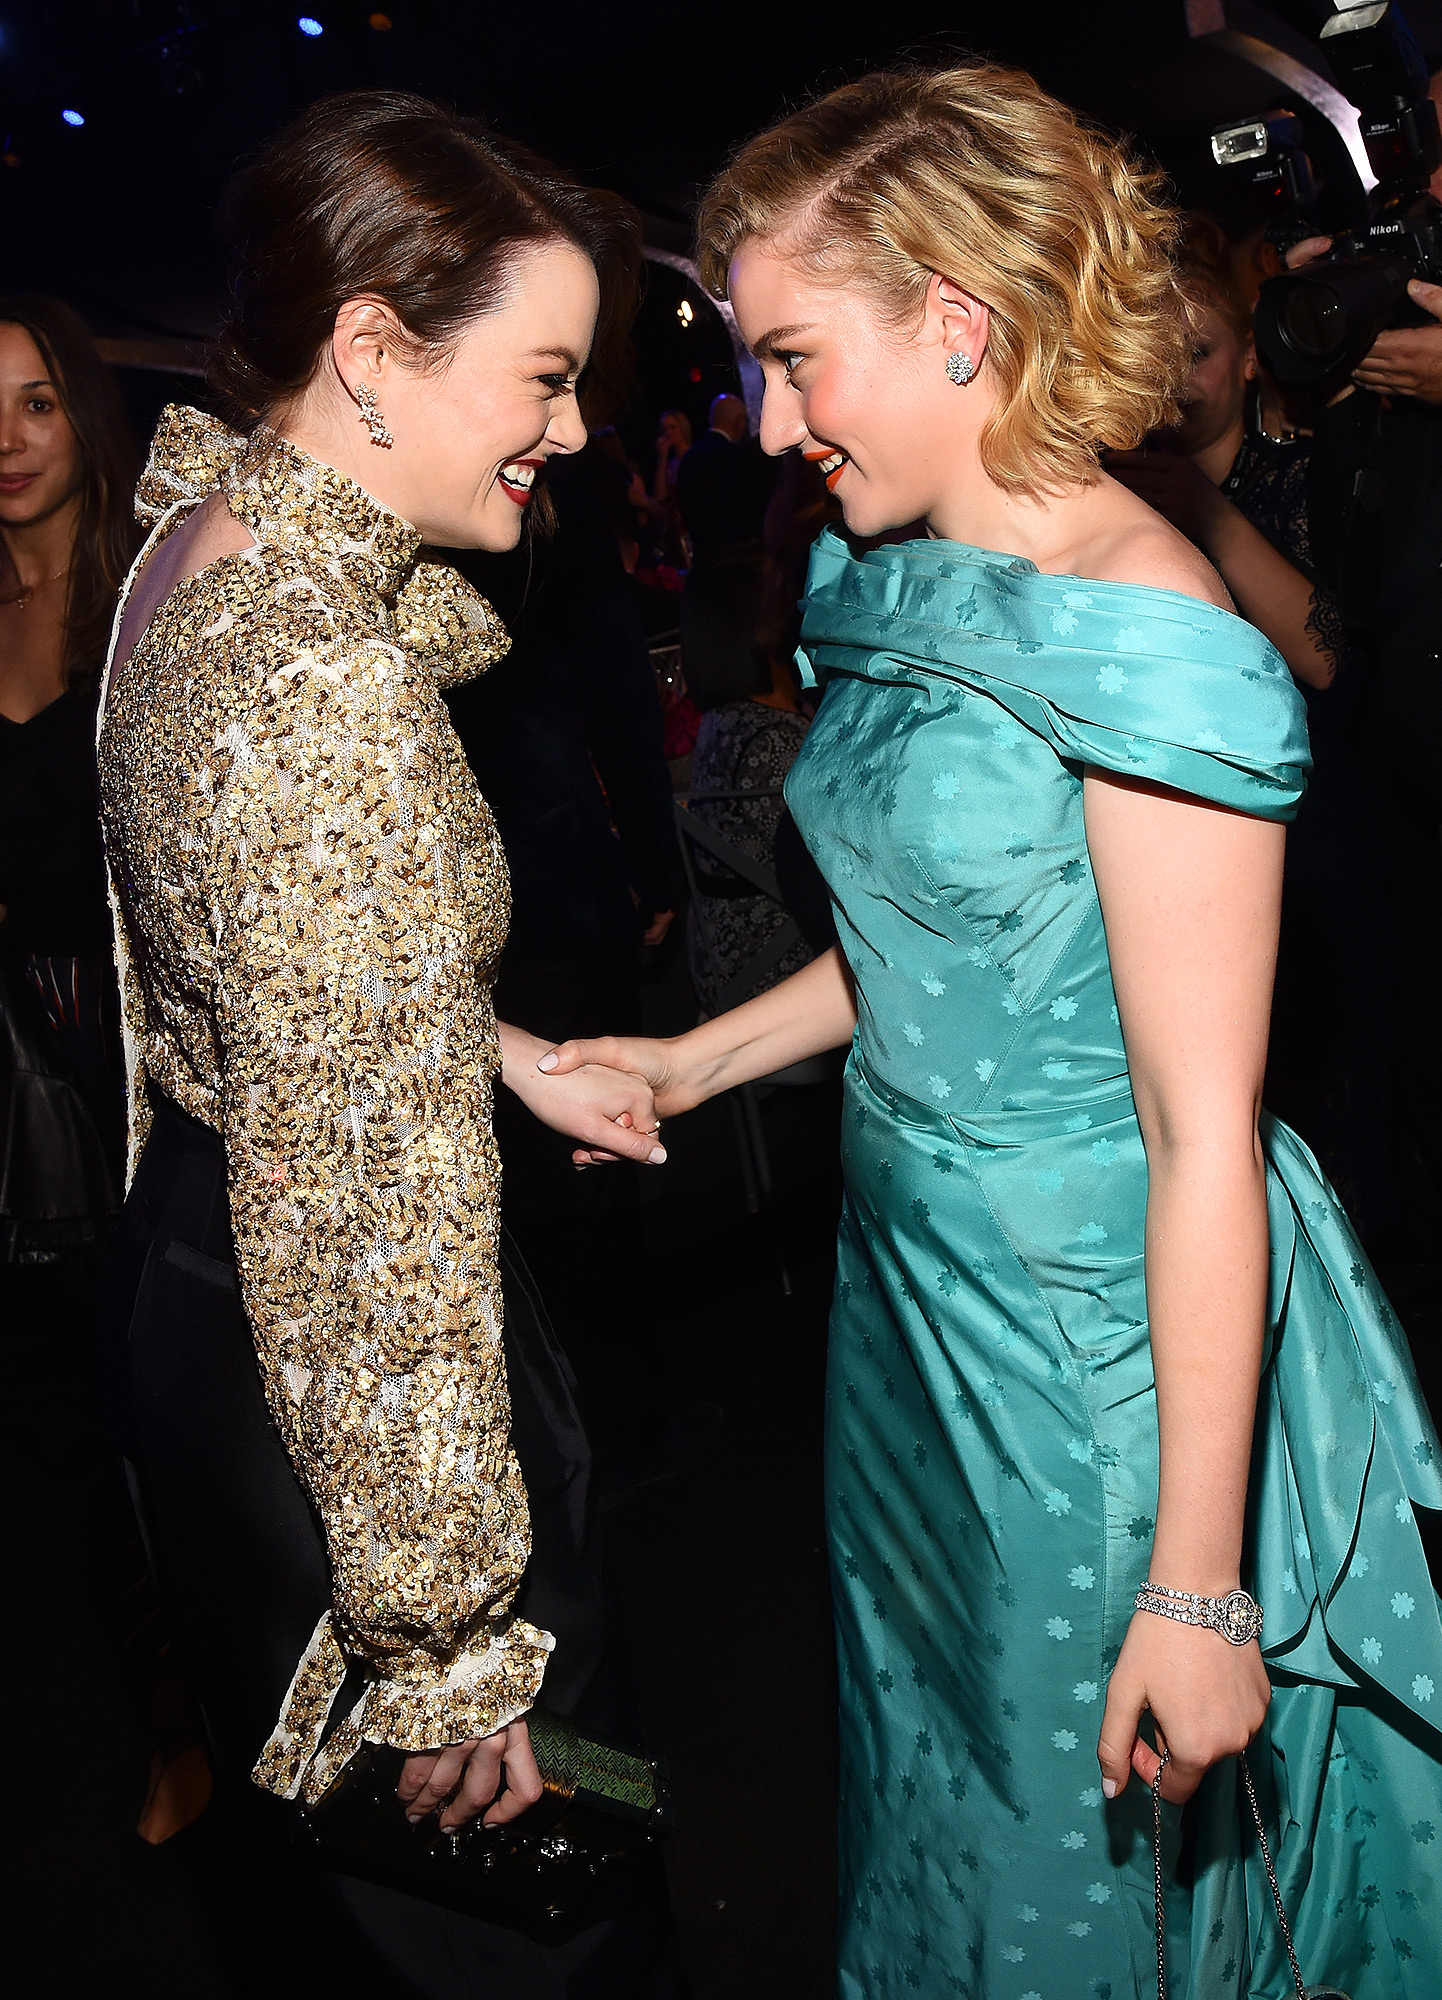 25th Annual Screen Actors Guild Awards, Cocktails, Los Angeles, USA - 27 Jan 2019